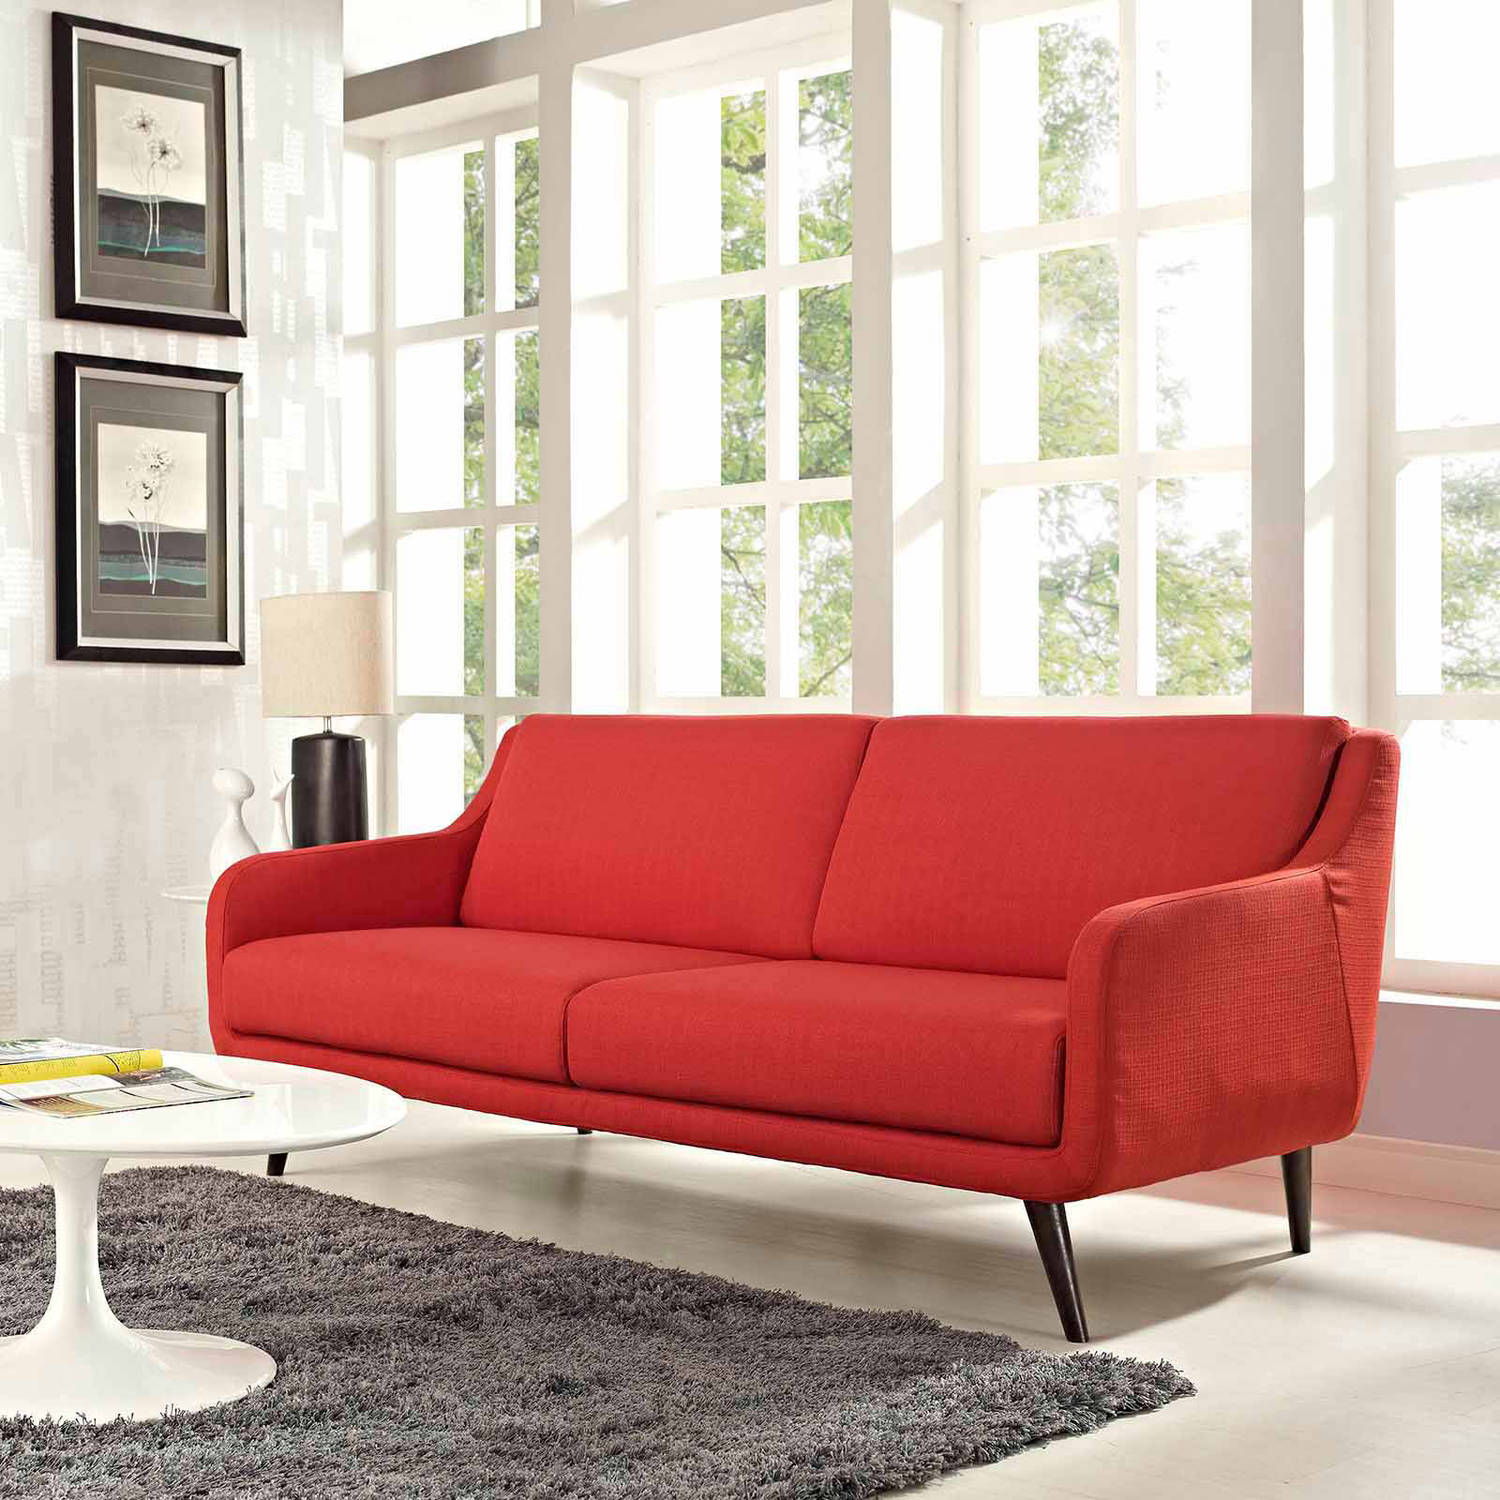 Modway Verve Upholstered Removable Cushion Sofa, Multiple Colors